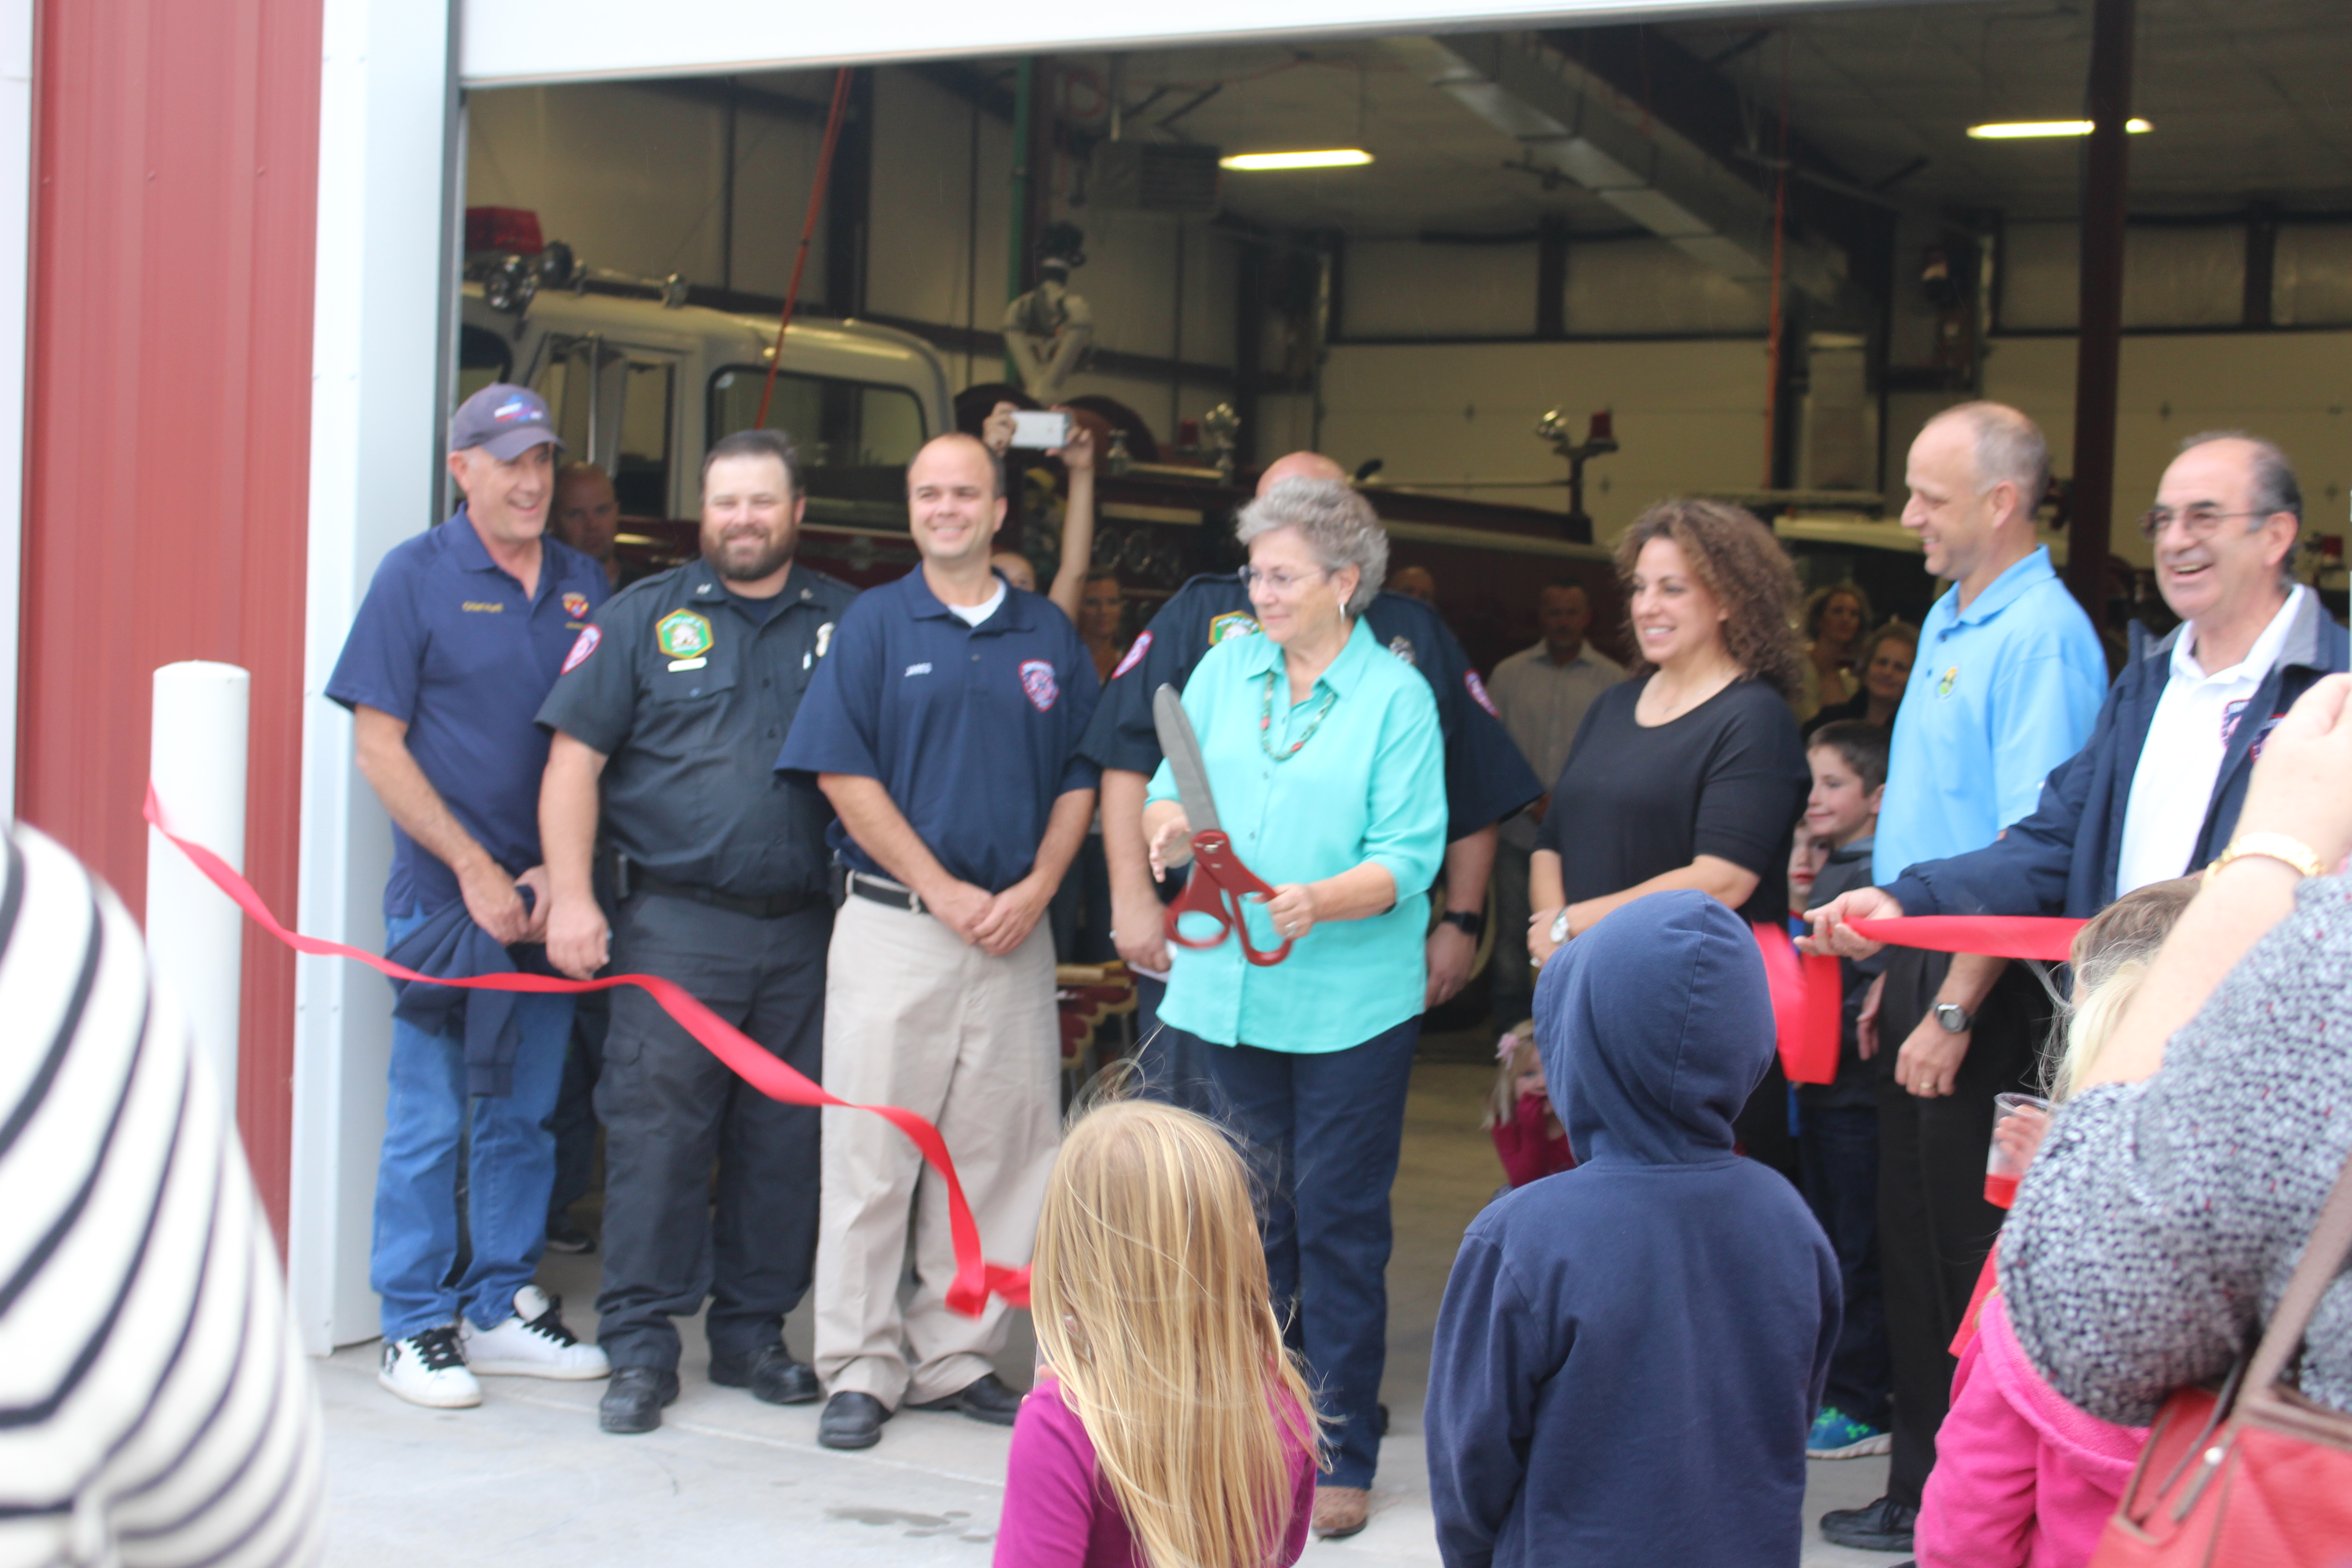 Elizabeth Bryson performs the ribbon-cutting at the newly opened Lynn K. Bryson Fire Station, Enterprise, Utah, Oct. 28, 2016 | Photo by Joseph Witham, St. George News